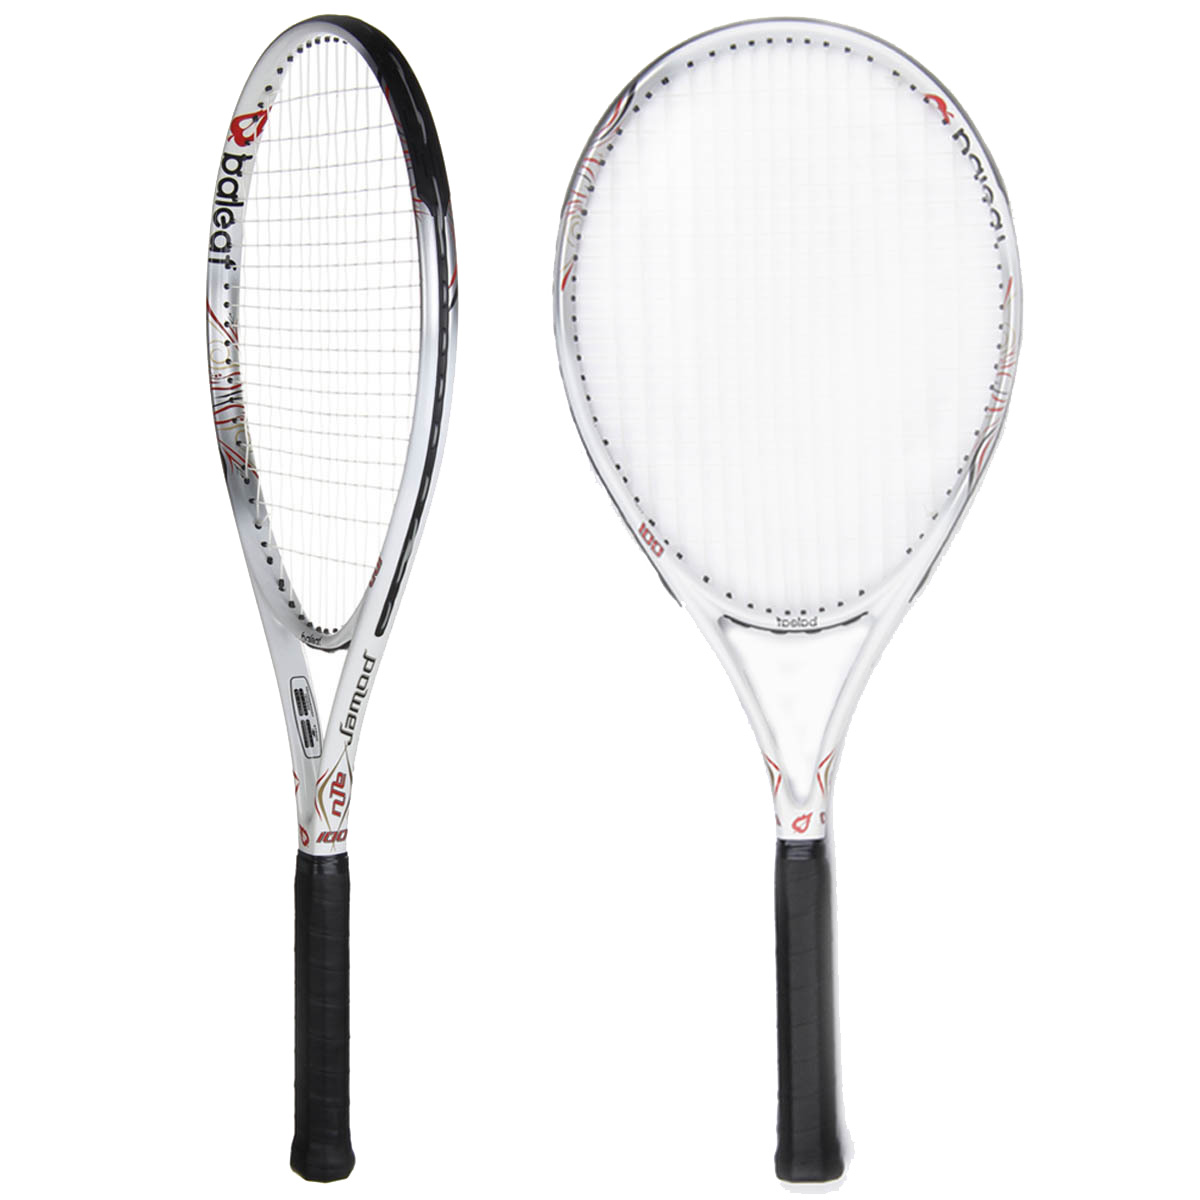 Baleaf\ Baile Ephesians B100 carbon tennis racket net making a genuine men and women just started 4-Follow through